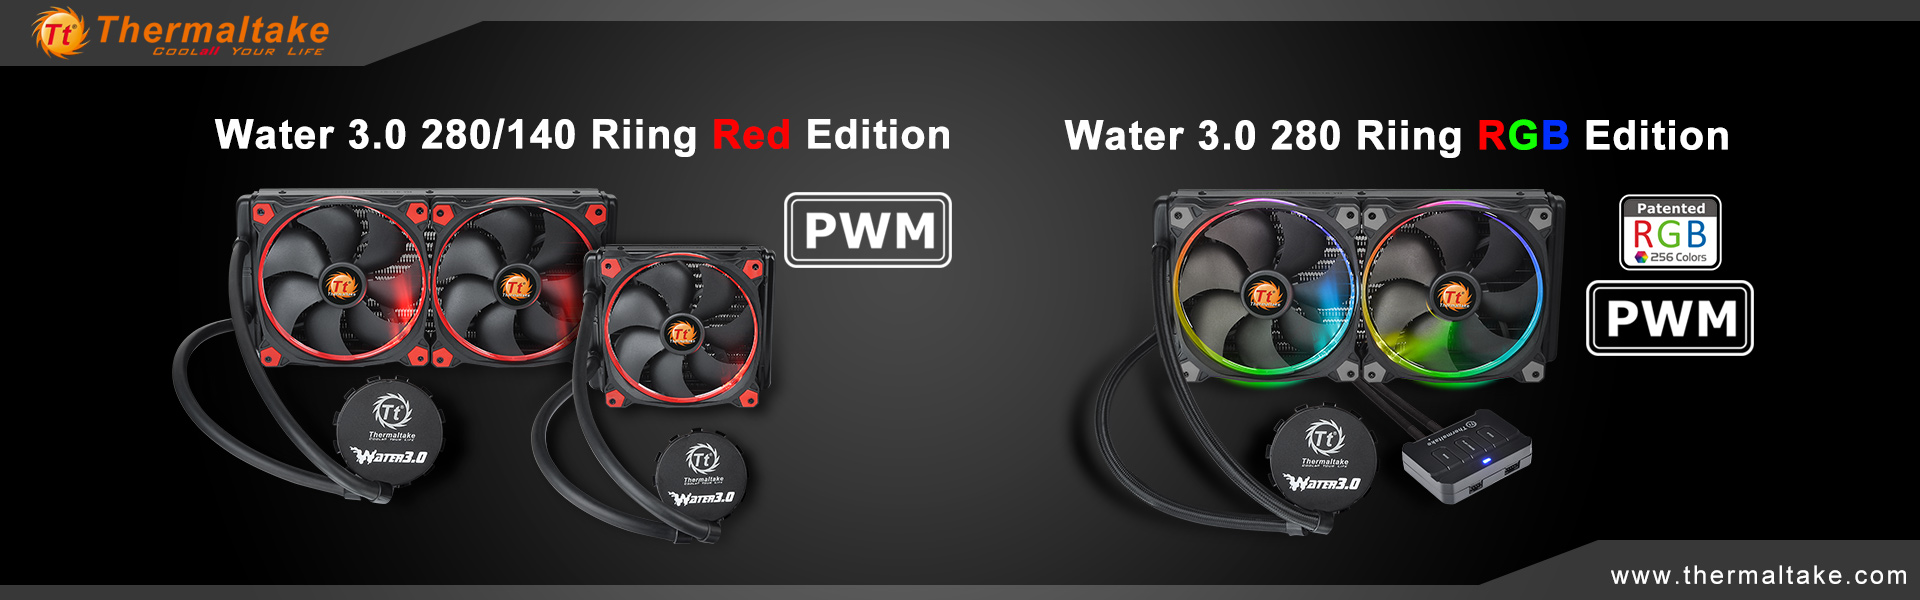 thermaltake-release-water-3-0-riing-rgb-and-red-all-in-one-liquid-cooler